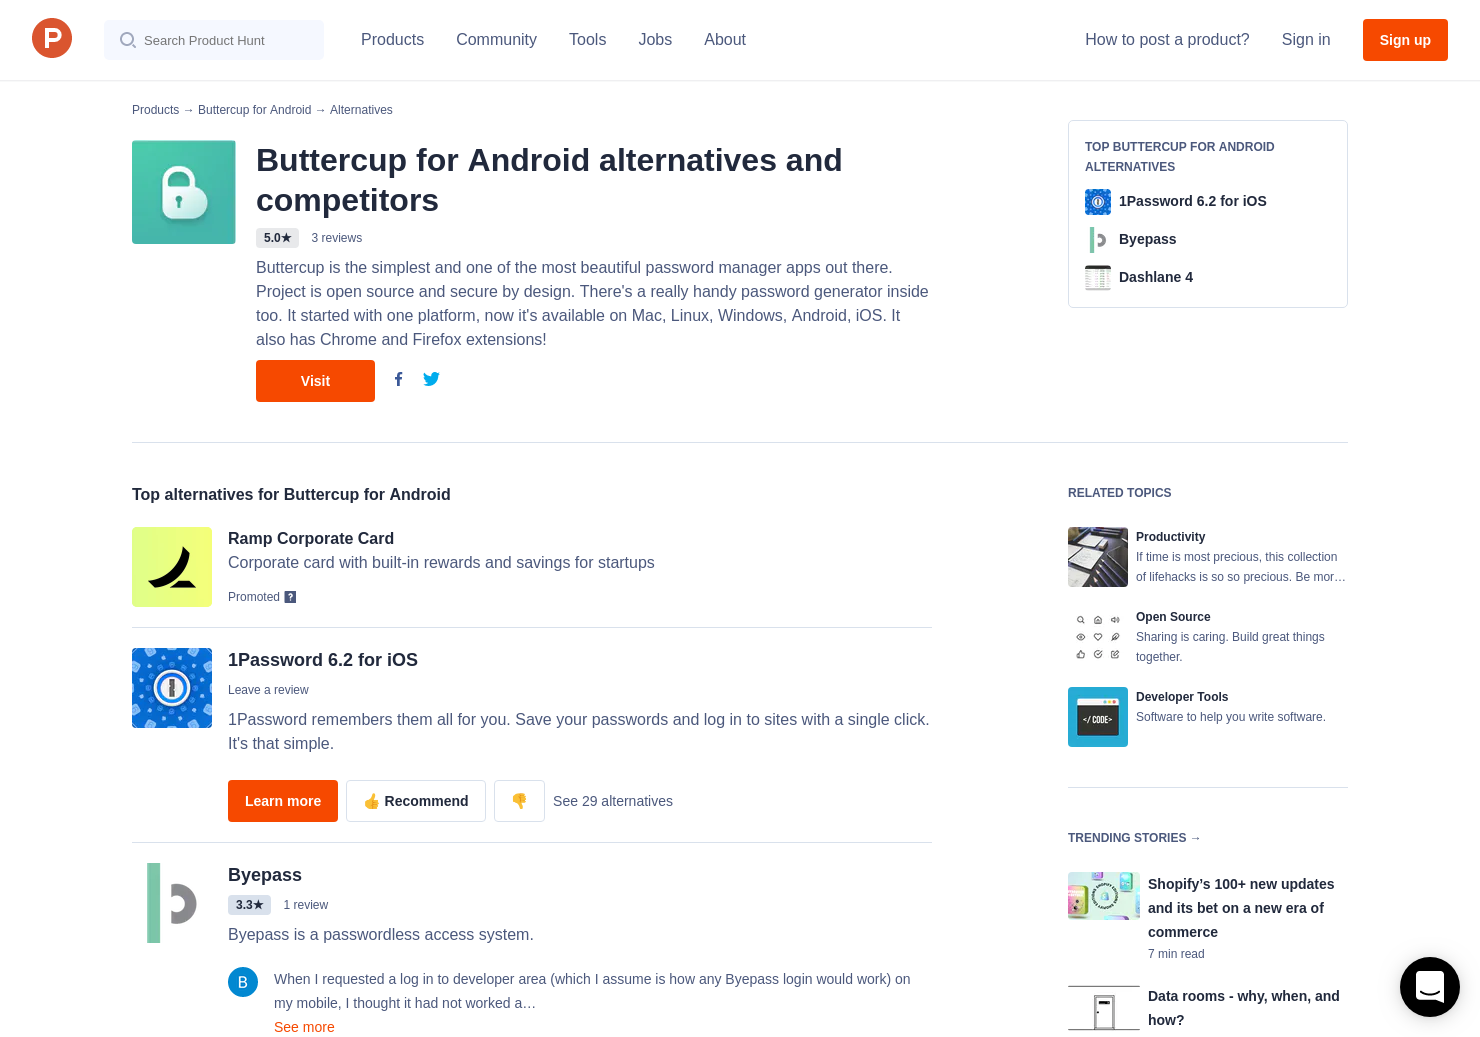 9 Alternatives to Buttercup for Android | Product Hunt